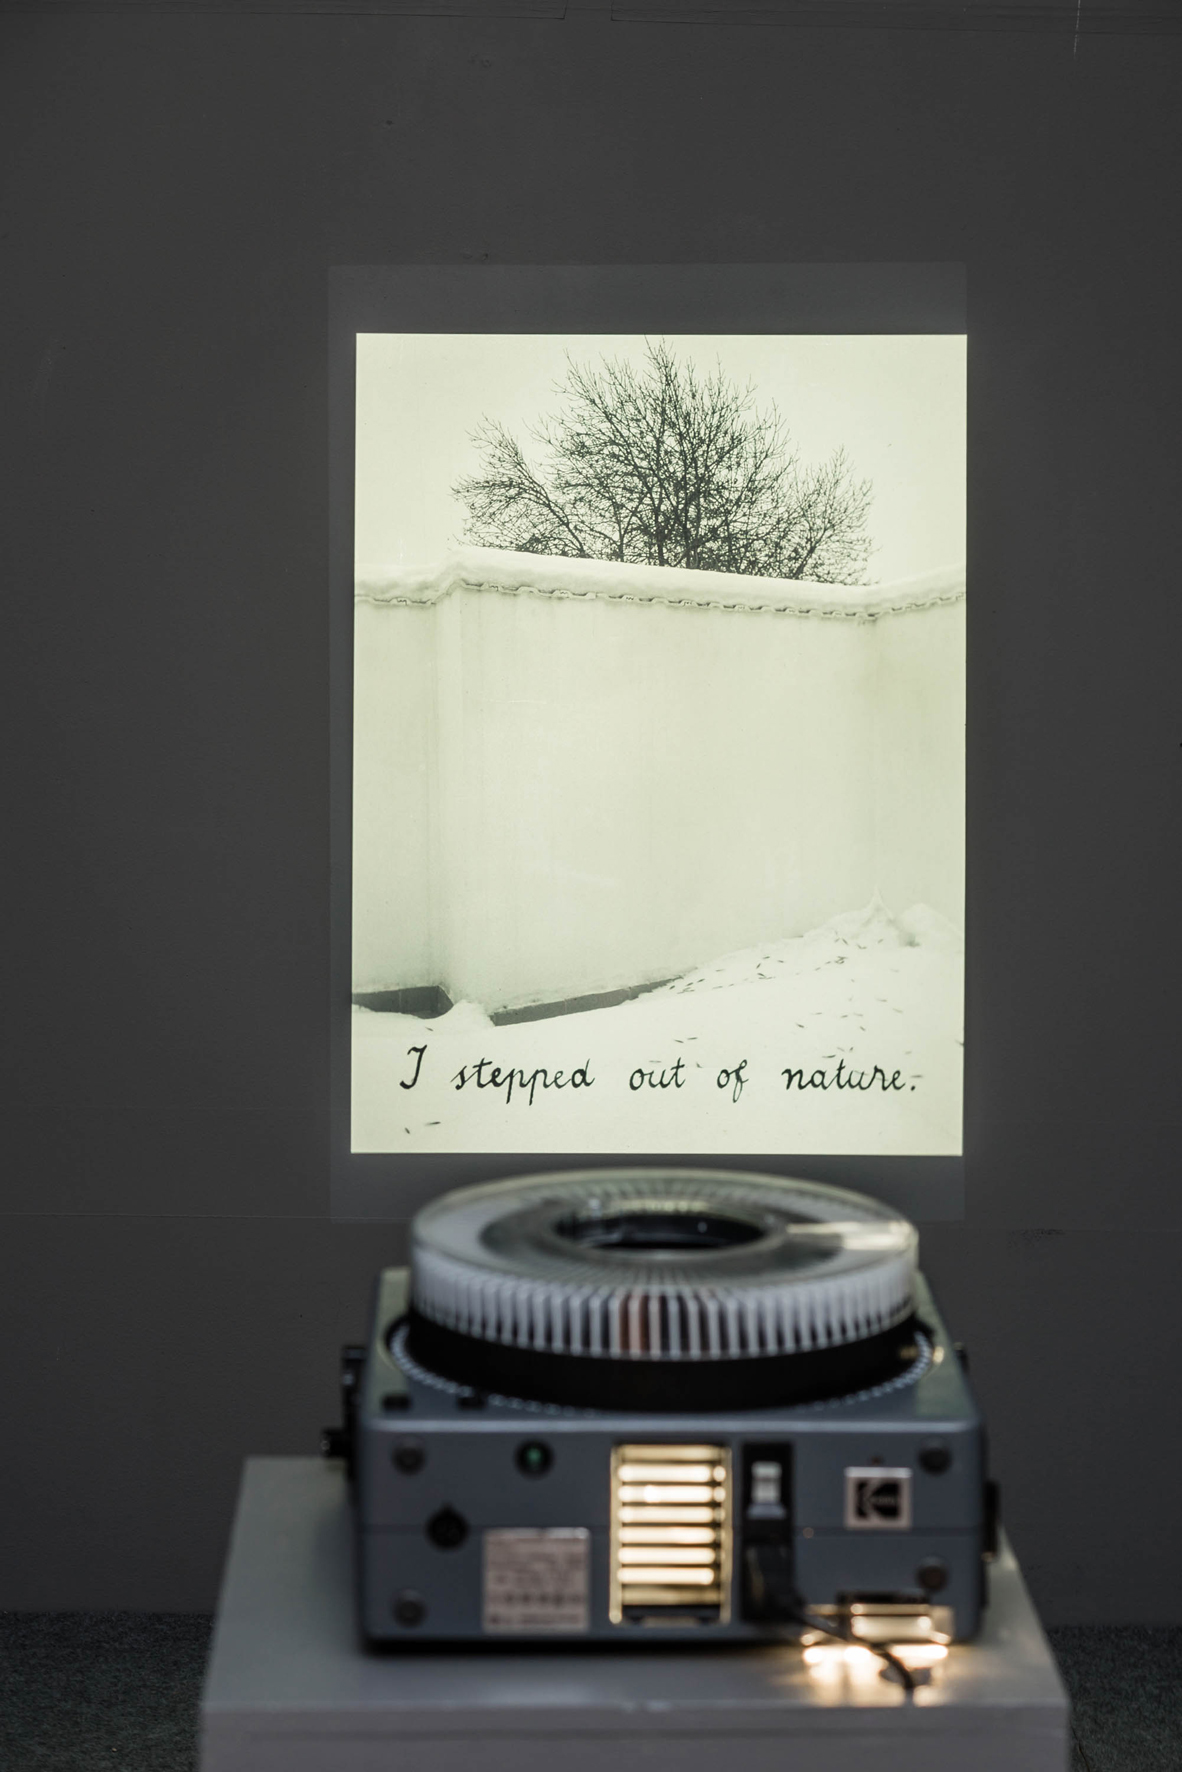 I ALWAYS WANTED TO BE AT THE CENTER (after Peter Handke) (2015) Slide projection, Exhibition view Image copyright: Jean Baptiste Béranger, courtesy of the Romanian Cultural Institute